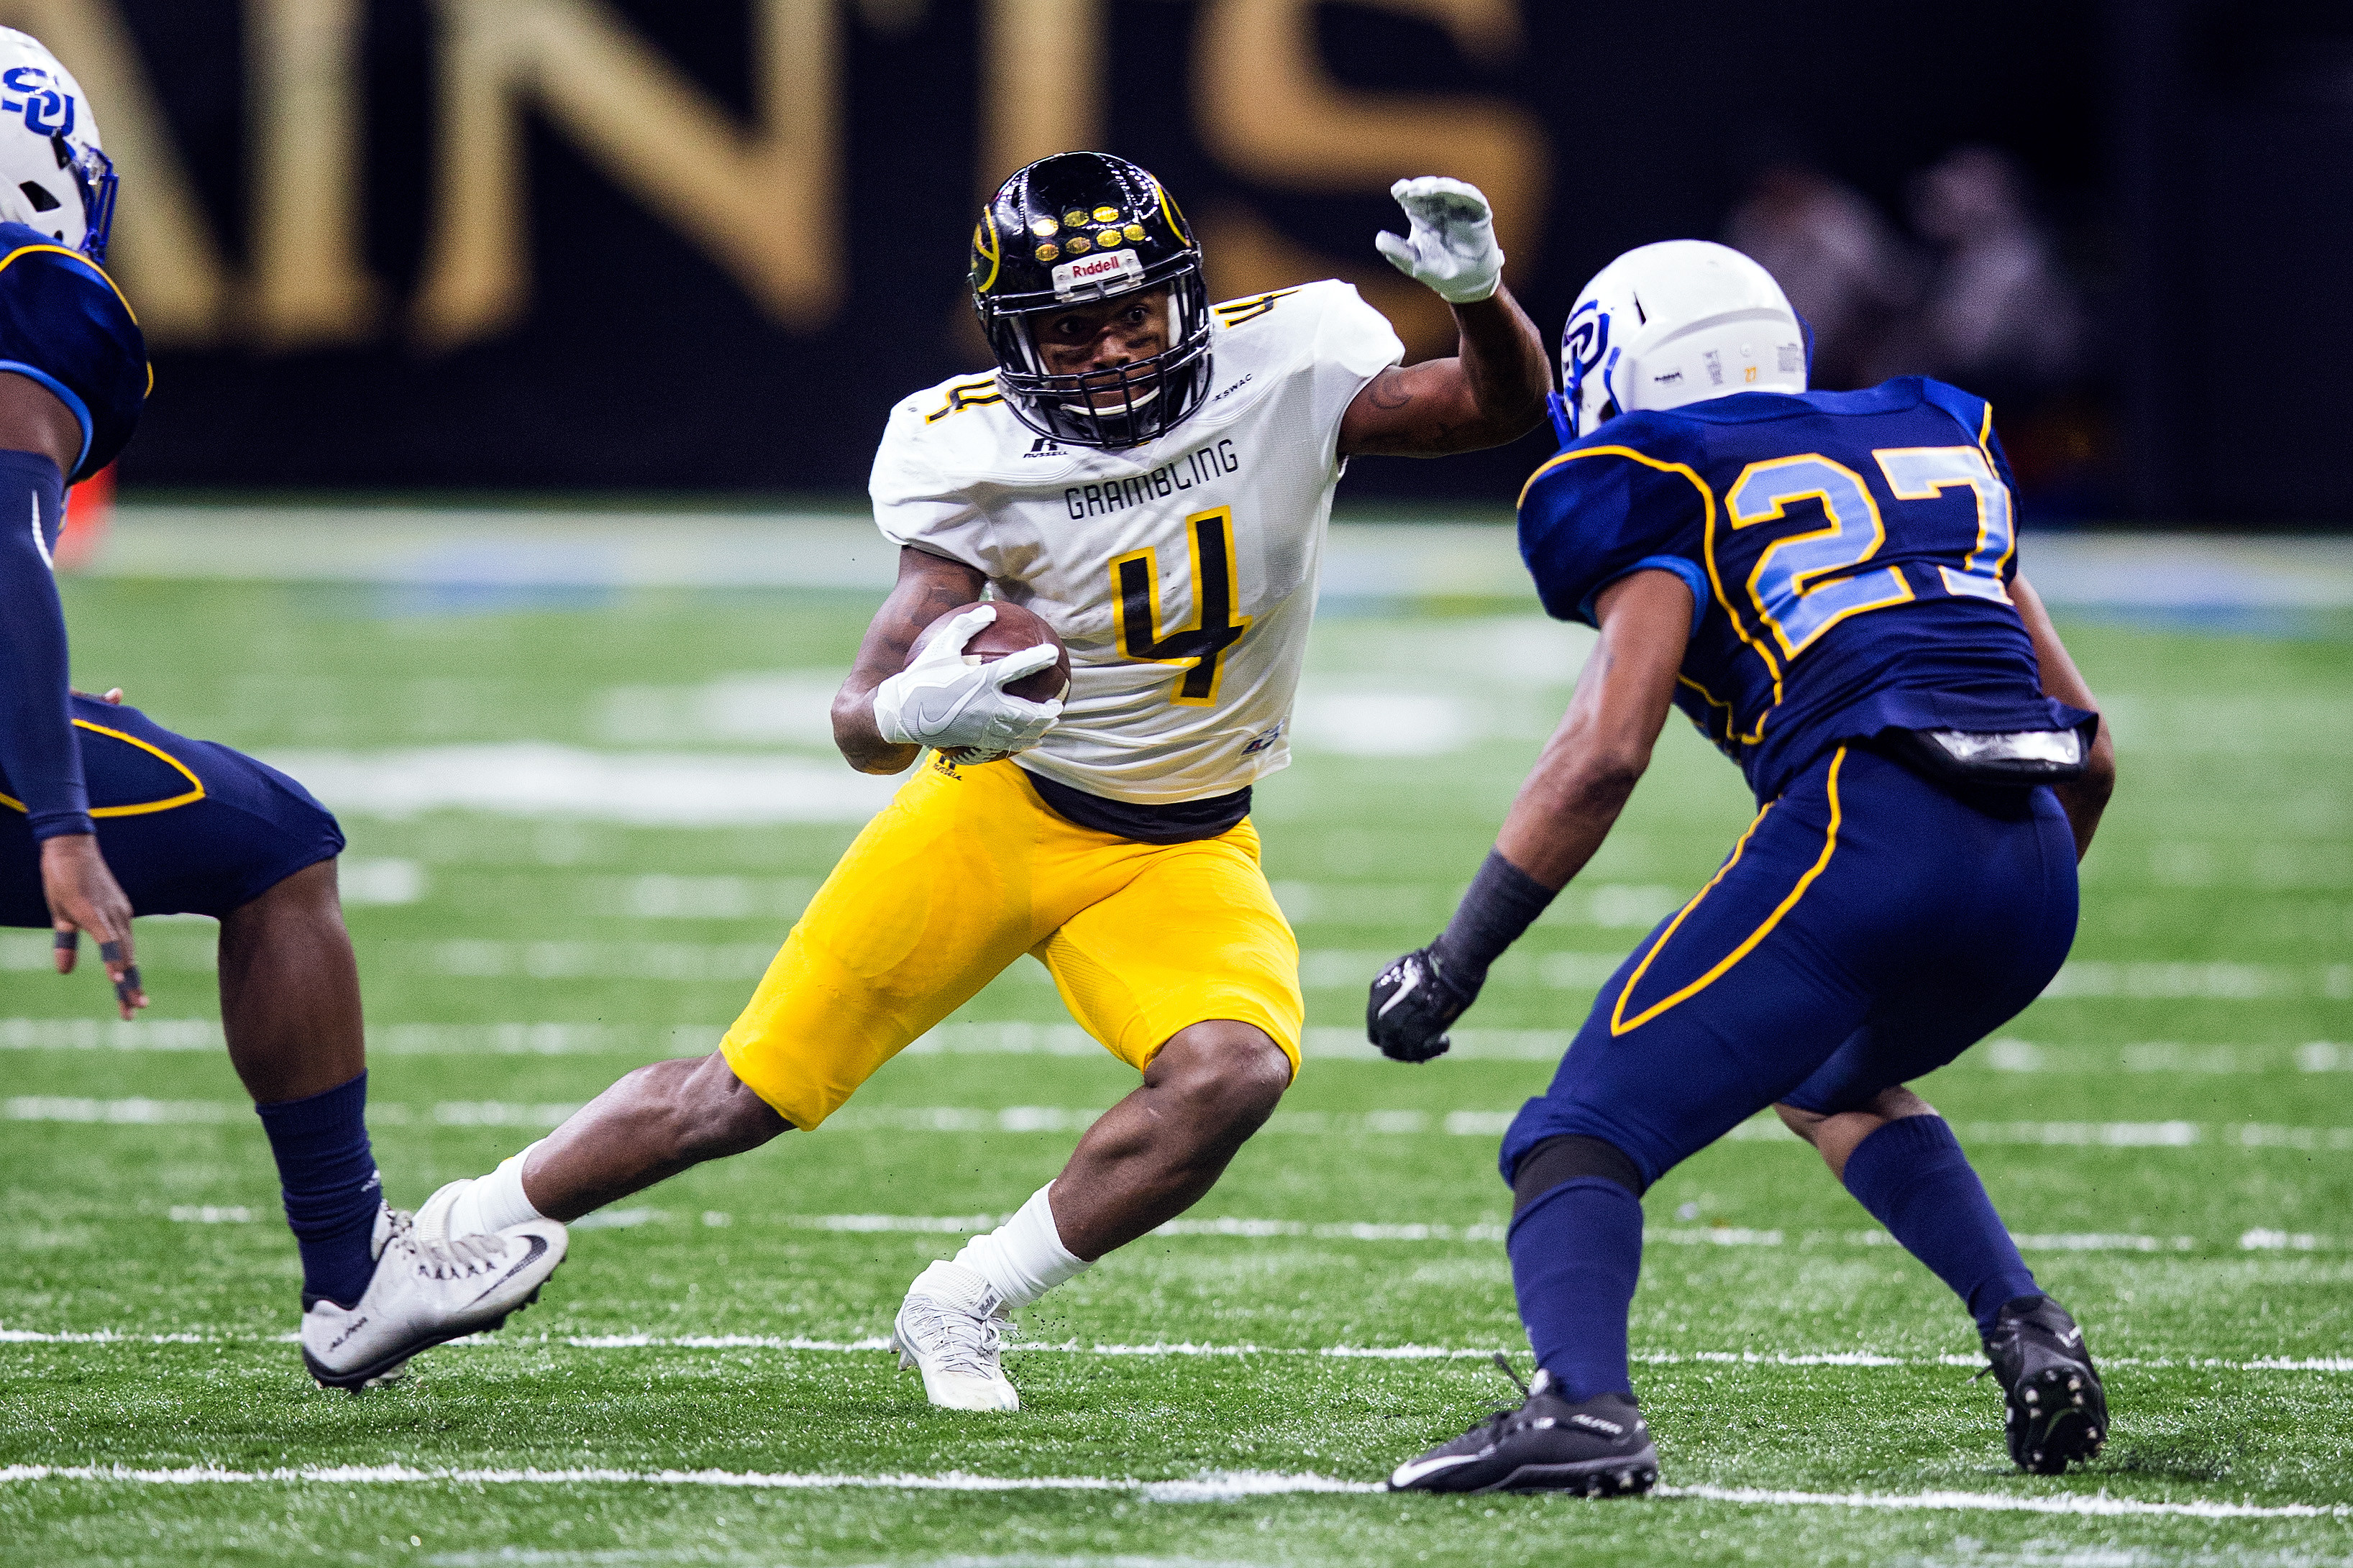 Grambling State Tigers running back Martez Carter (4) rushes the ball during the Bayou Classic with the Southern University Jaguars versus the Grambling State Tigers on November 26, 2016 at the Mercedes-Benz Superdome in New Orleans, Louisiana.